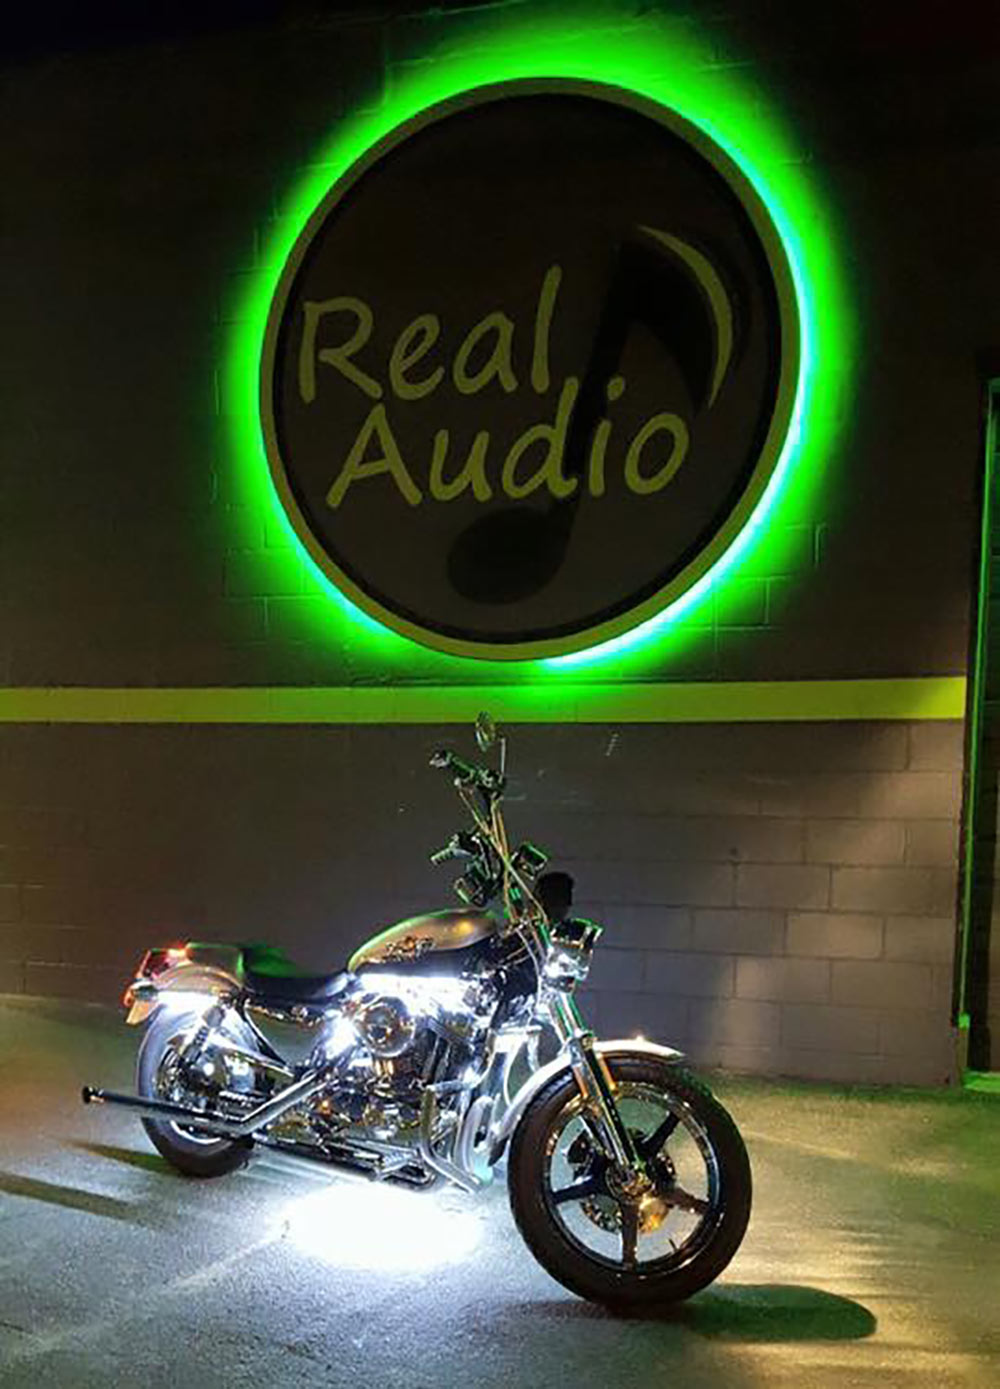 Photo of a custom motorcycle in front of Real Audio shop at night